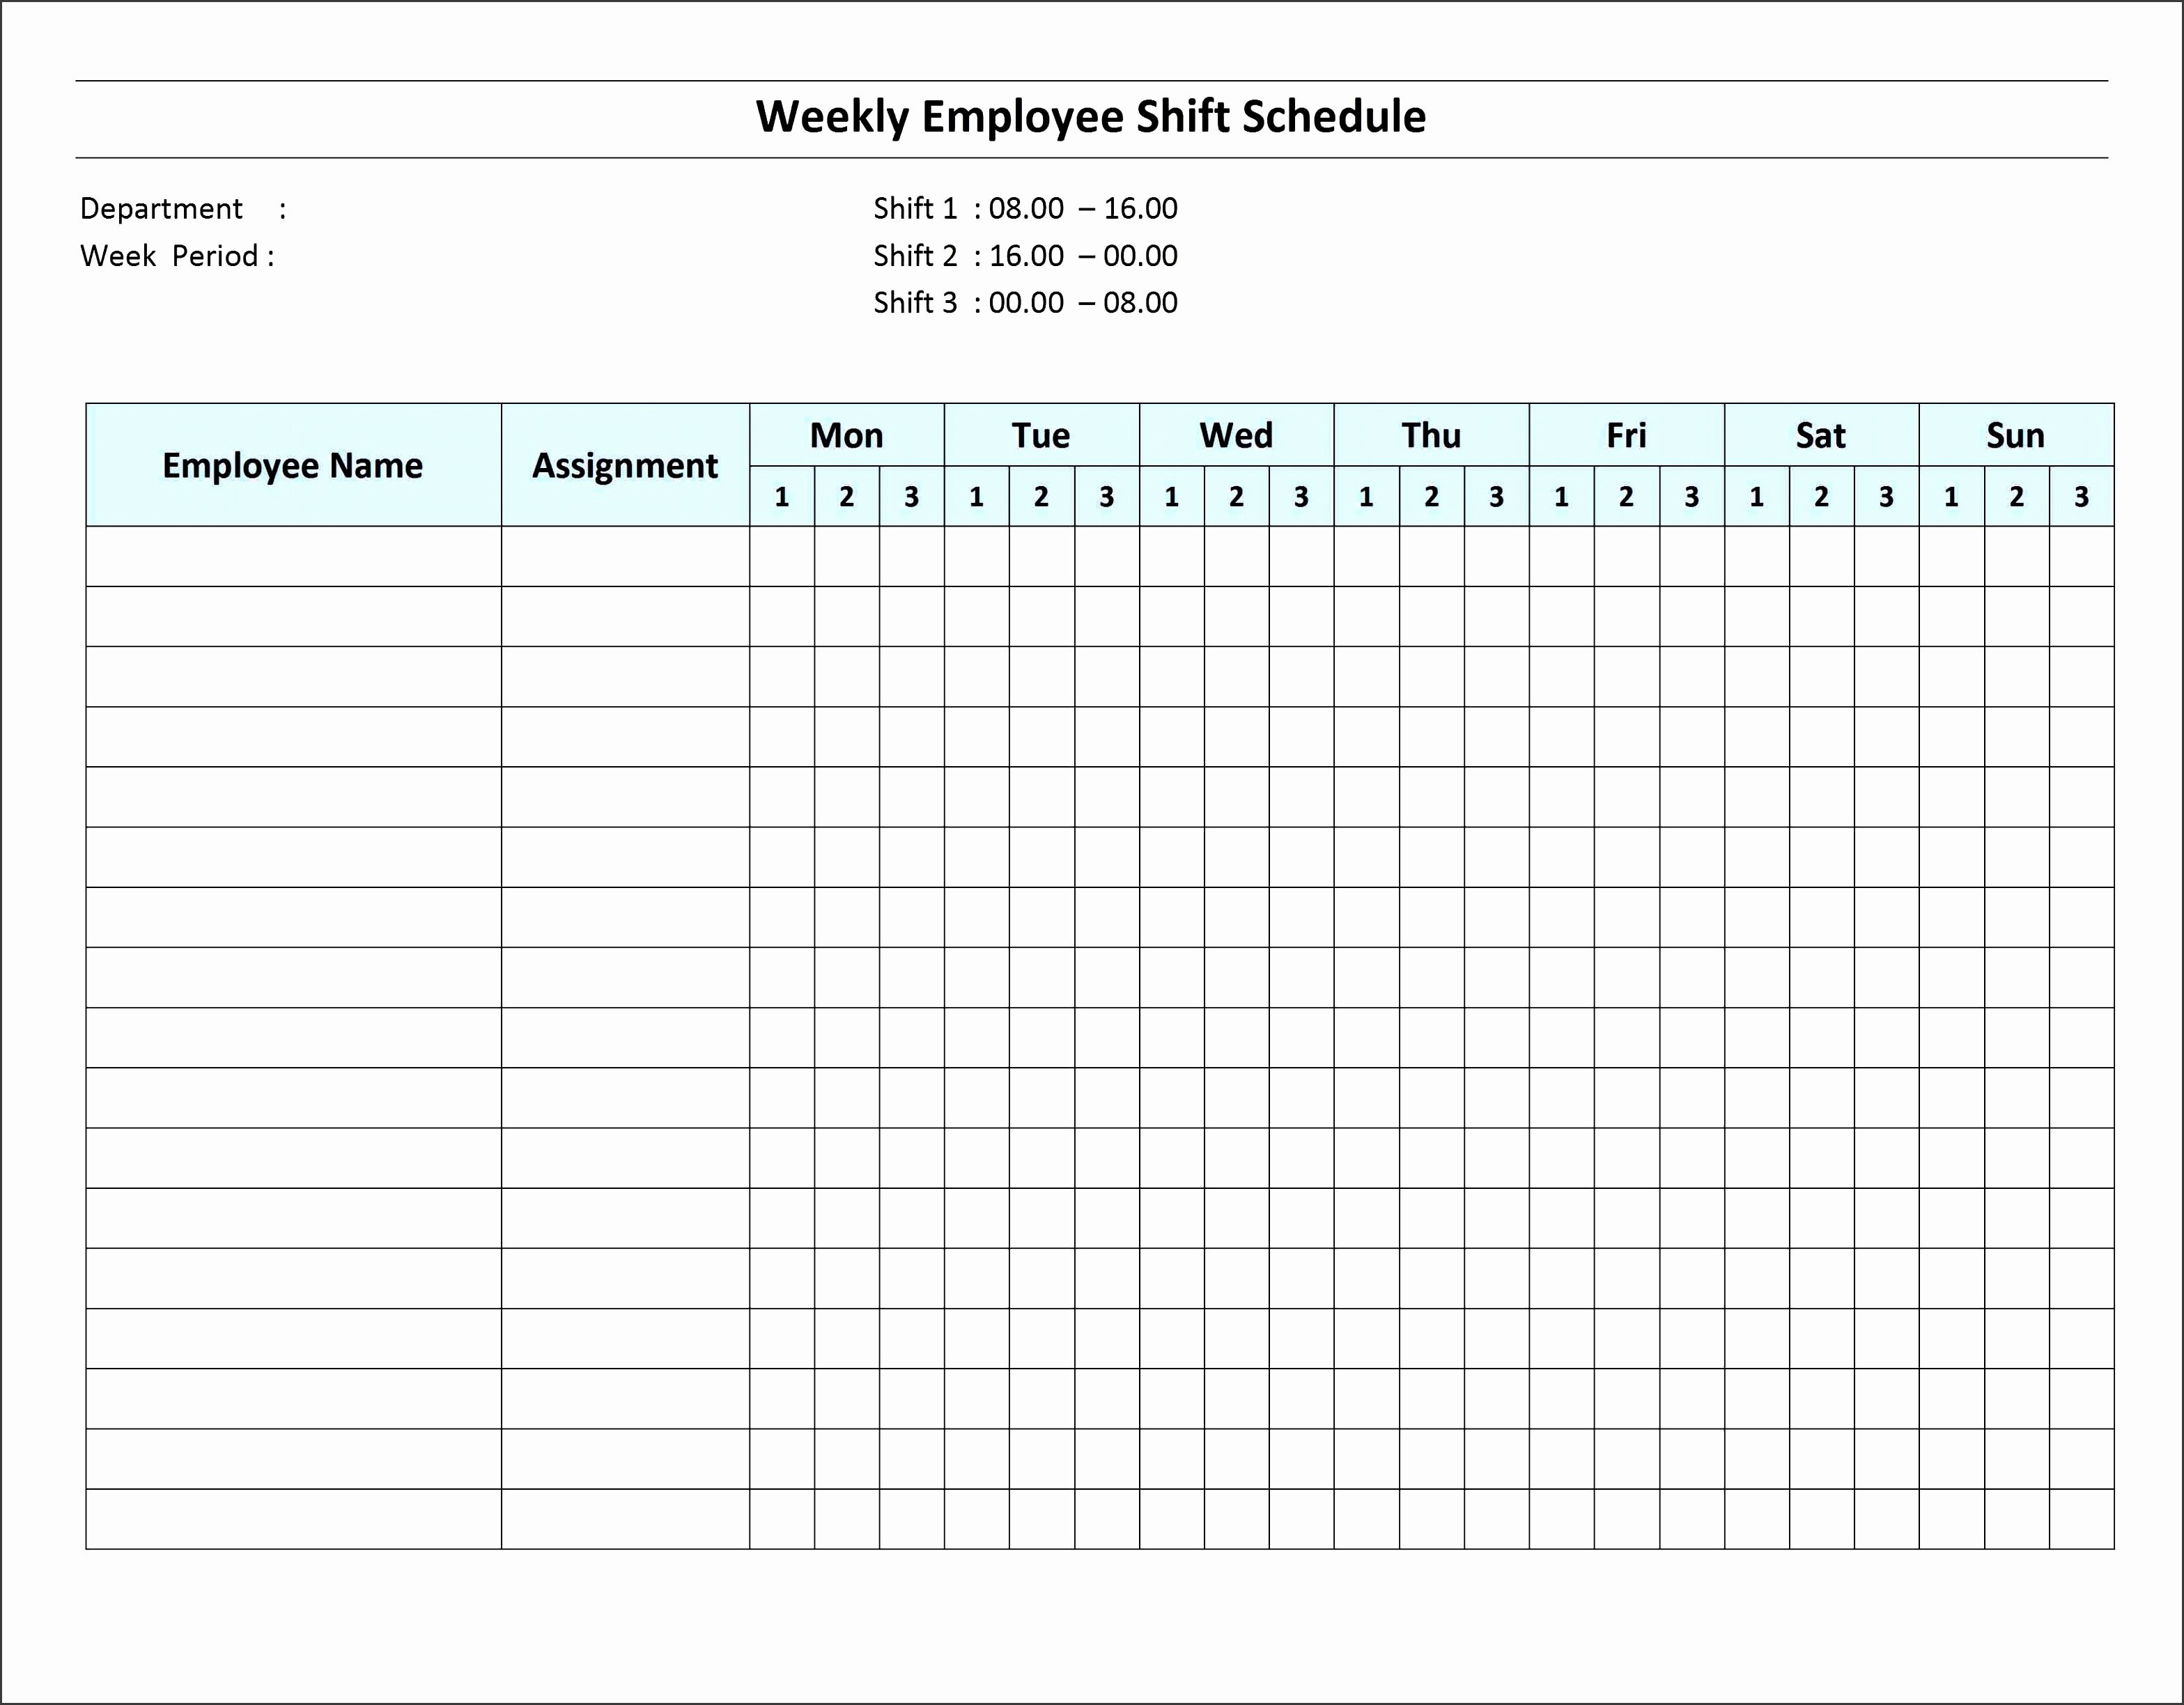 Monthly Employee Shift Schedule Template Best Of 10 How to Create Daily Work Schedule In Excel